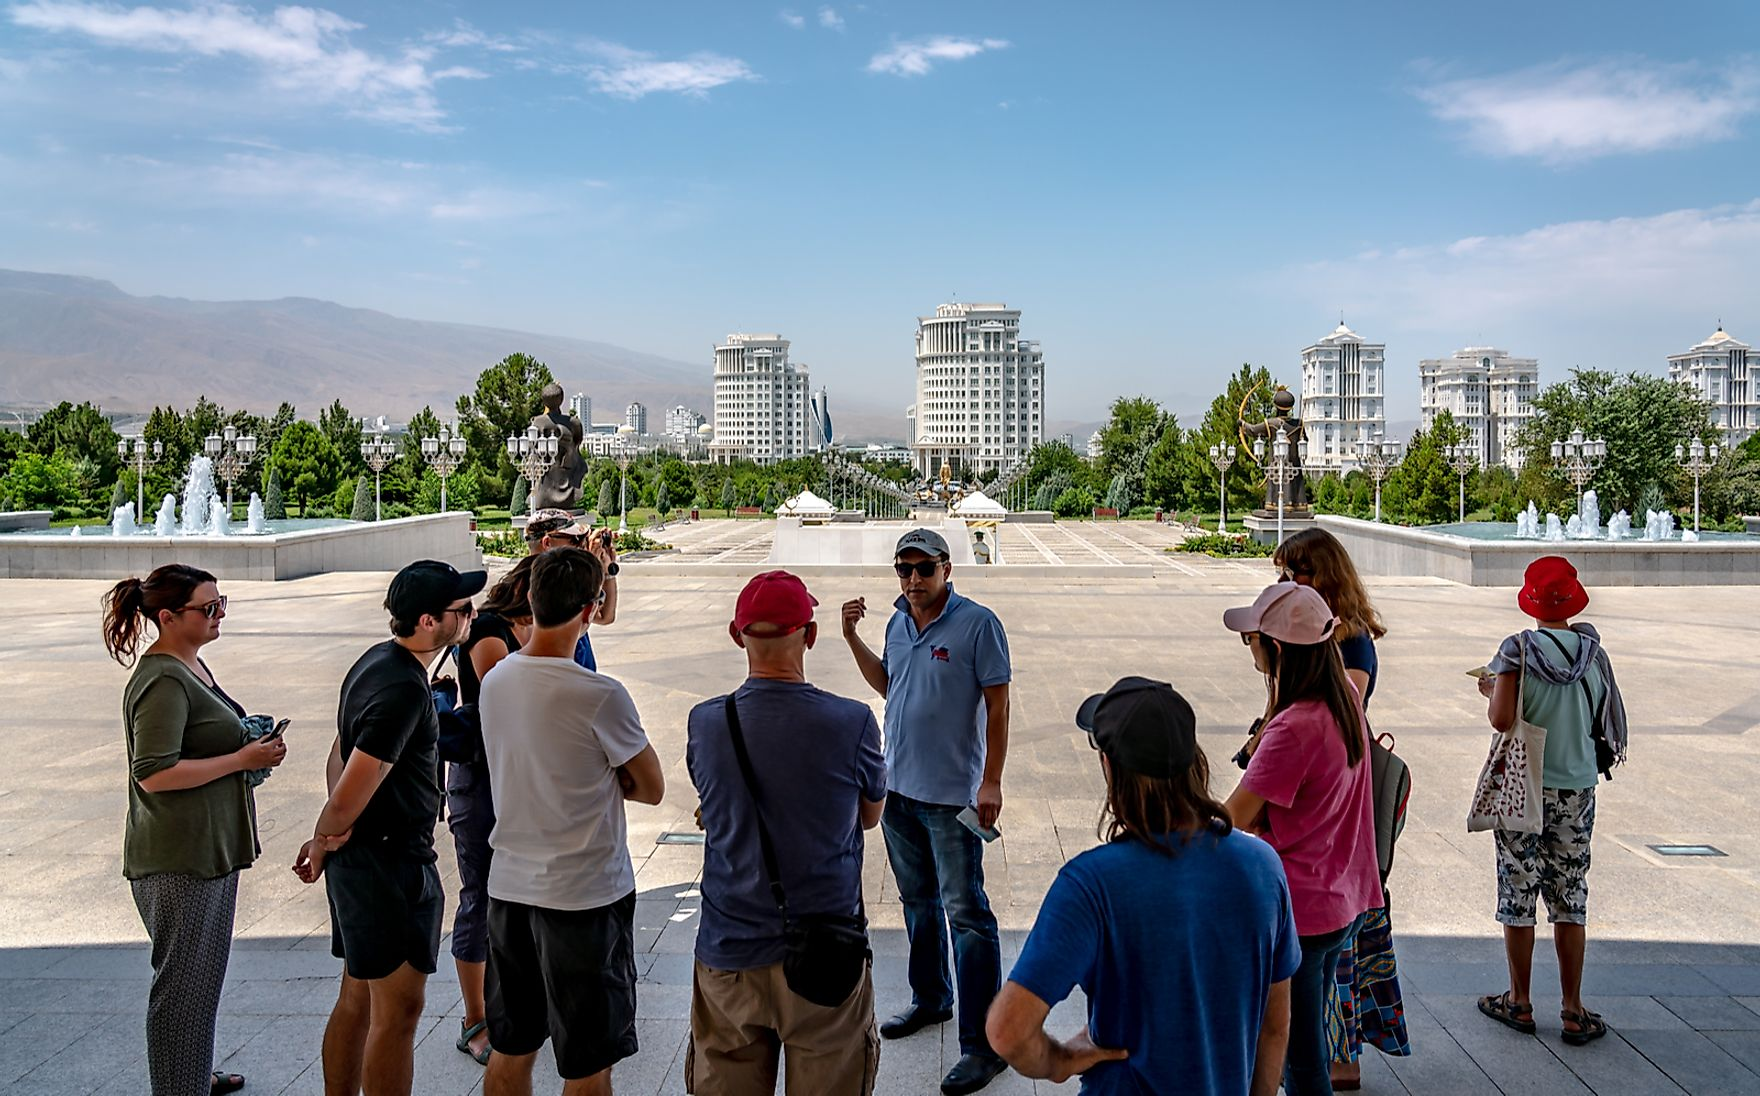 A group of tourists go on a spacious sightseeing adventure around Ashgabat. LMspencer / Shutterstock.com.